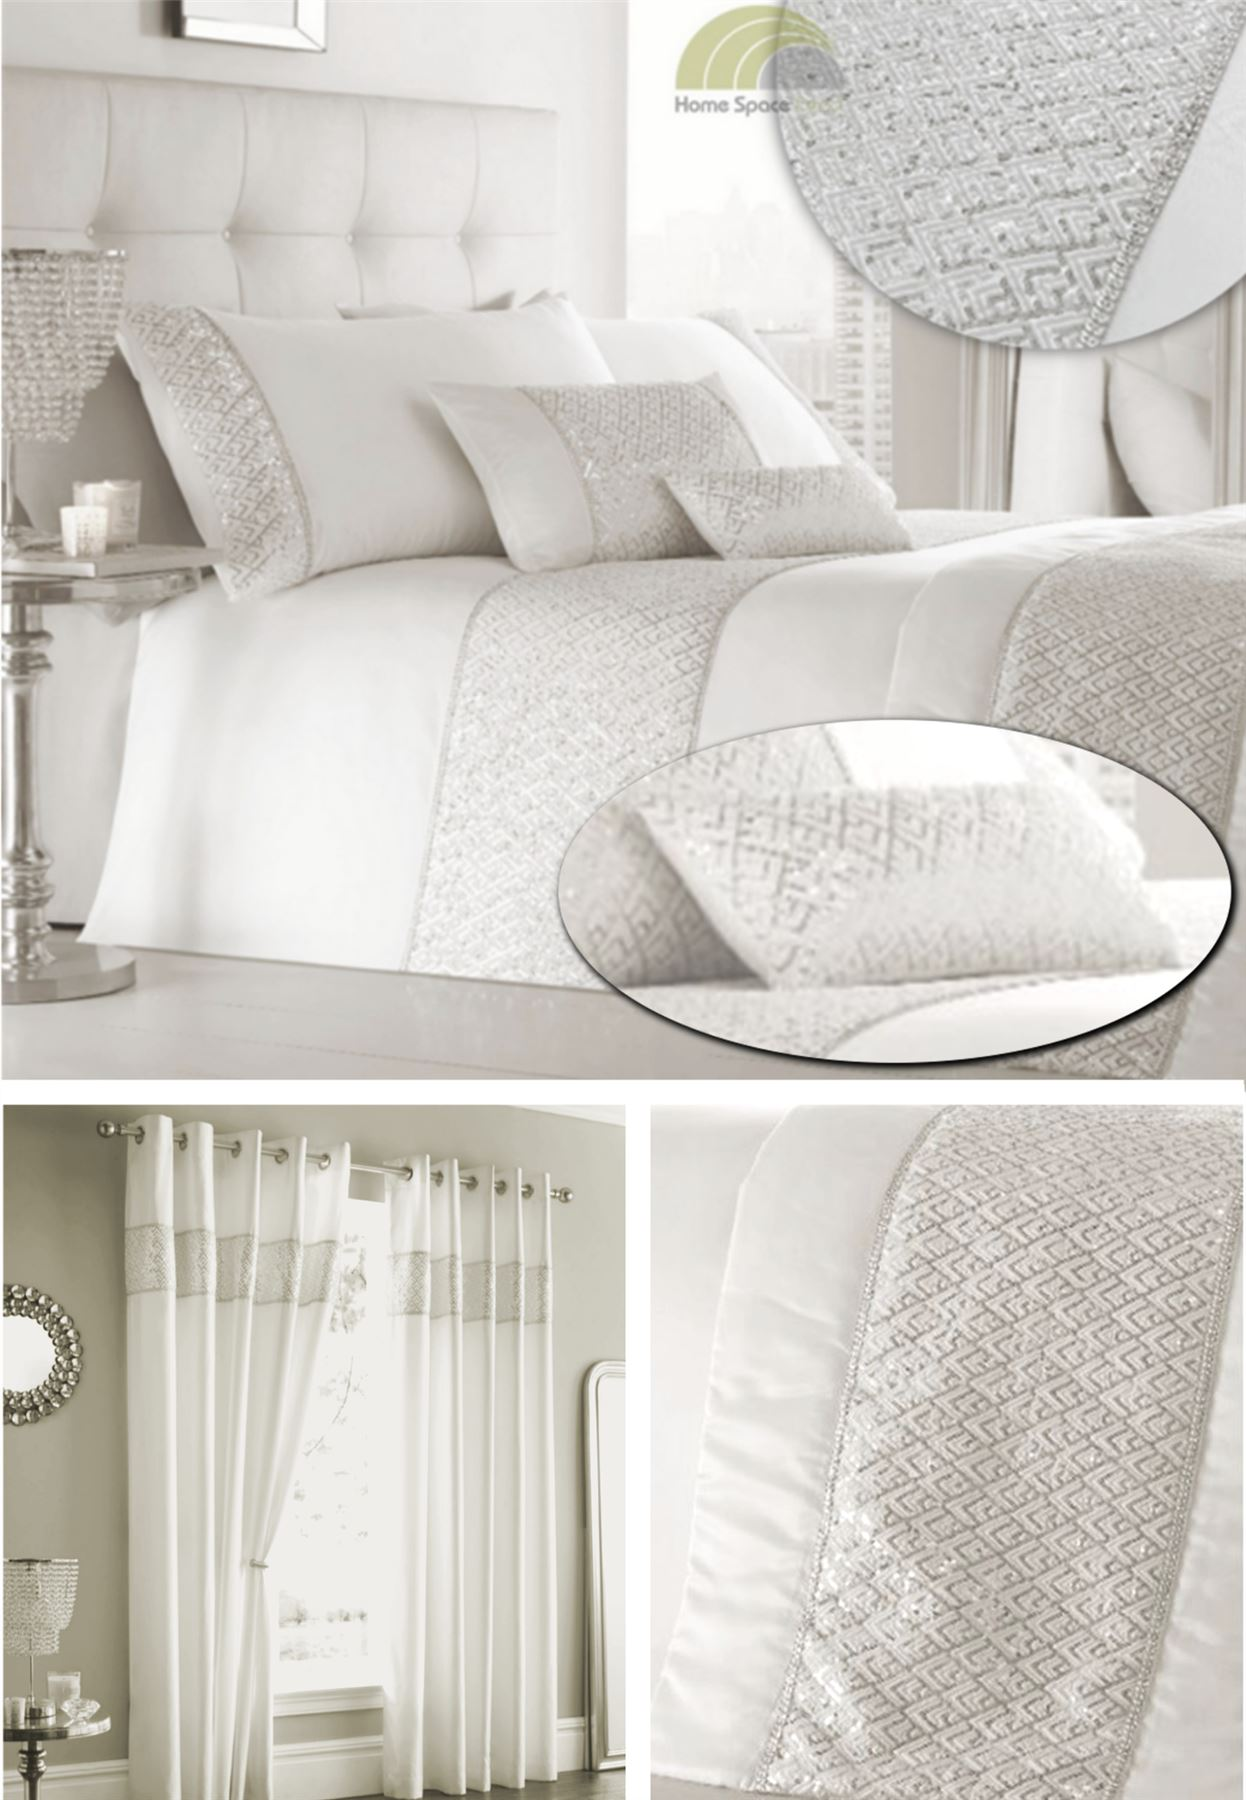 Sequined Off White Duvet Cover Bedding Bed Set Or Cushion Or Curtains Or Runner Ebay